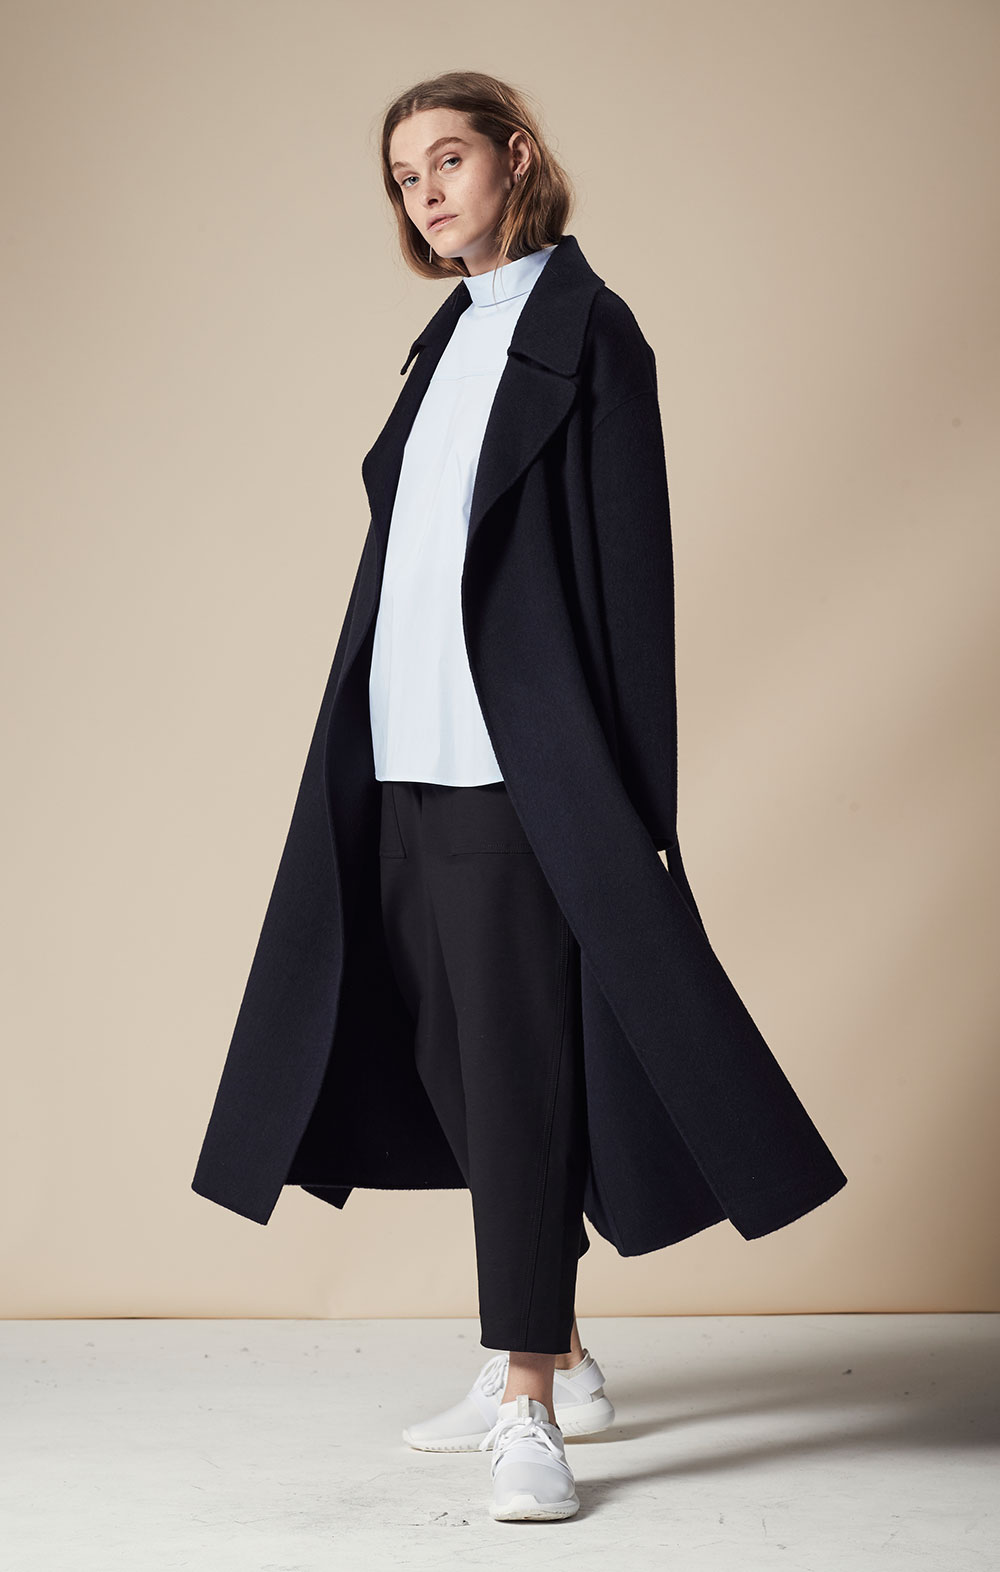 Wool-blend Handmade Coat FBJ072-NVY Thin Striped Open Back Shirt FBT025-LBL Pocket Detail Cropped Pants FBP030-BLK